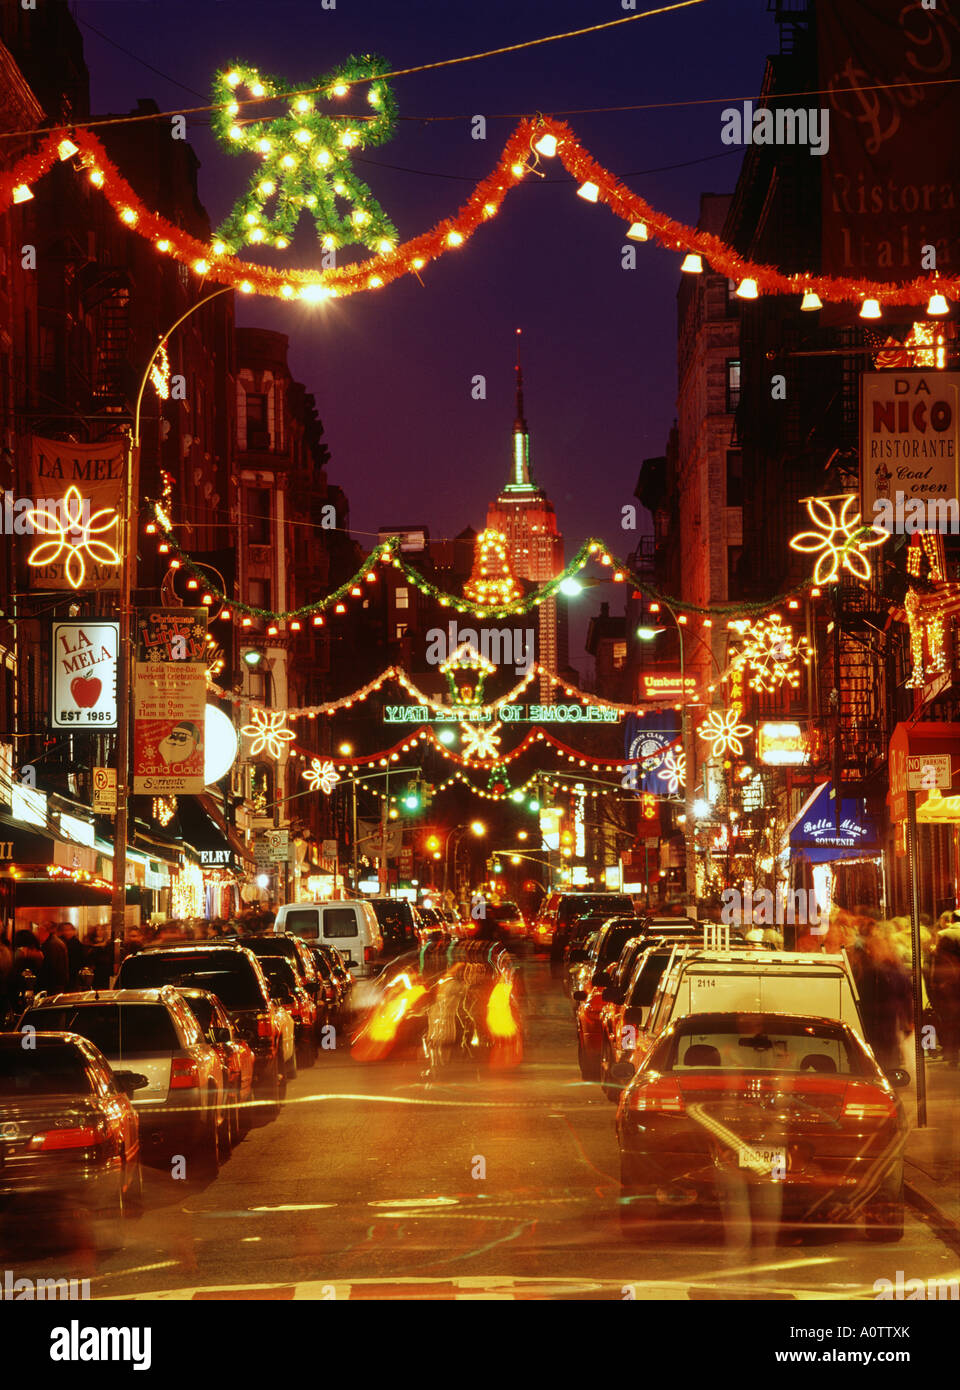 Little Christmas Italy.Christmas At Little Italy Stock Photo 10068666 Alamy